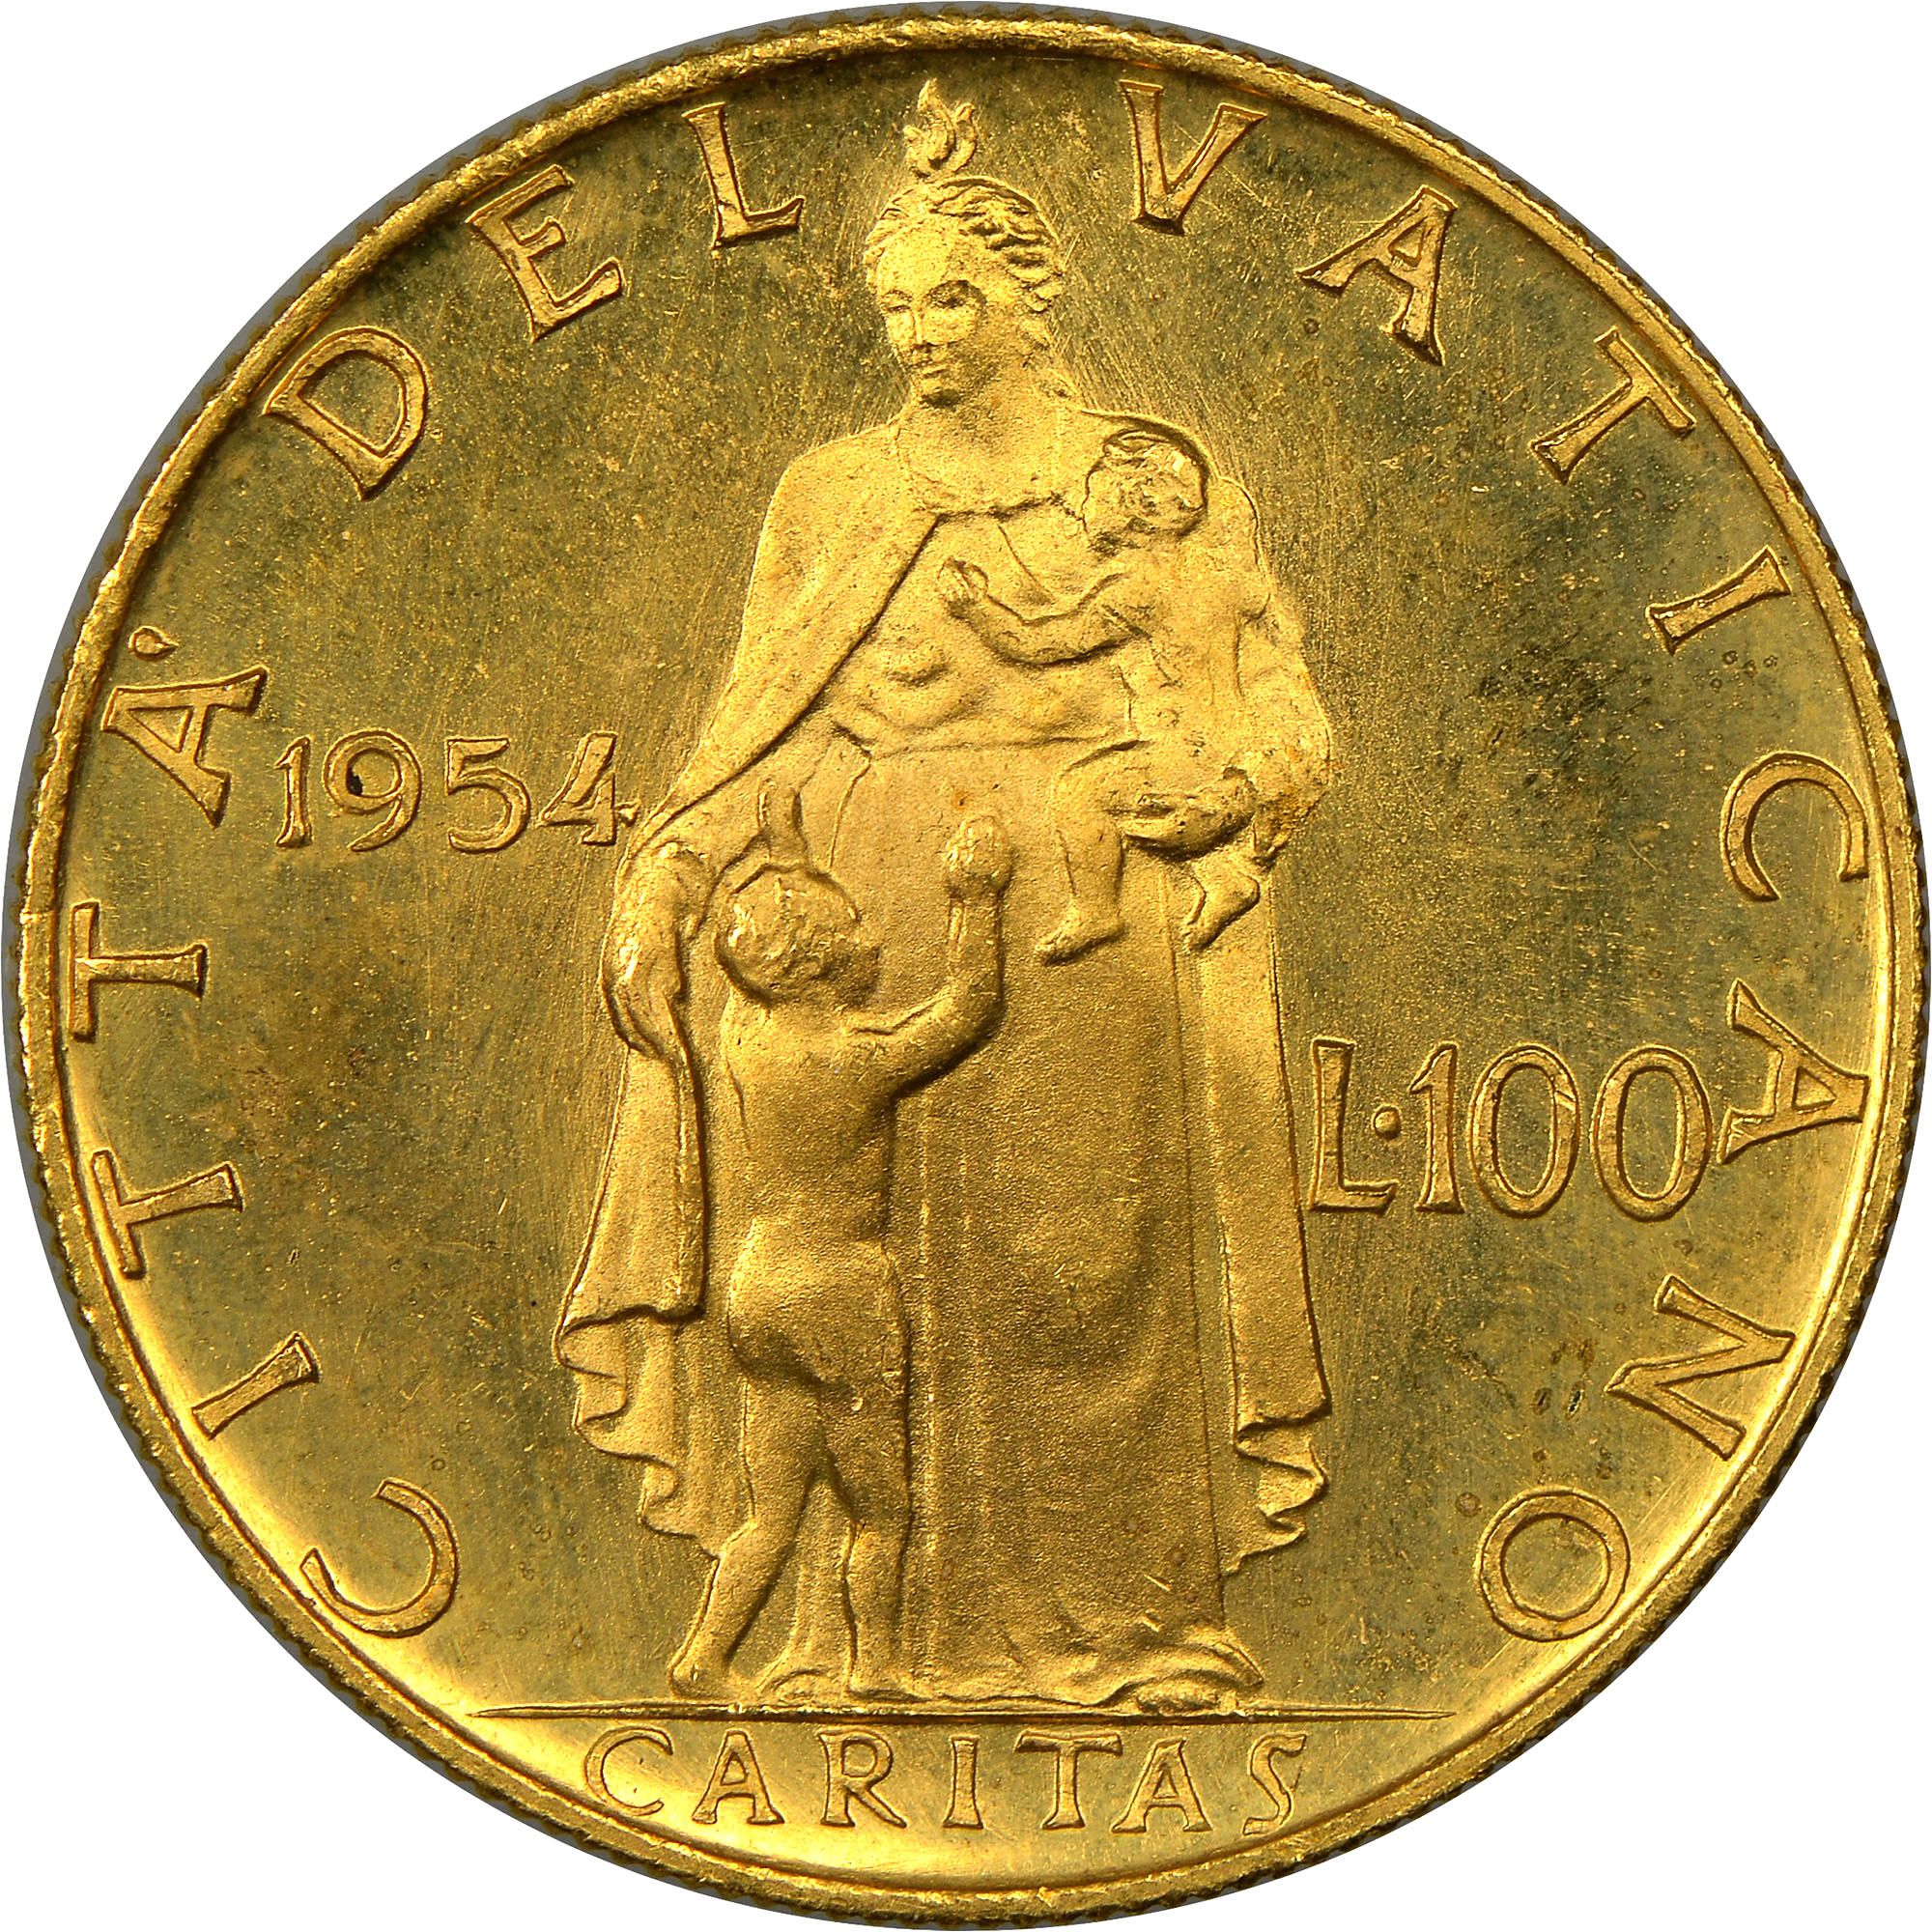 Image result for gold in vatican tunnel